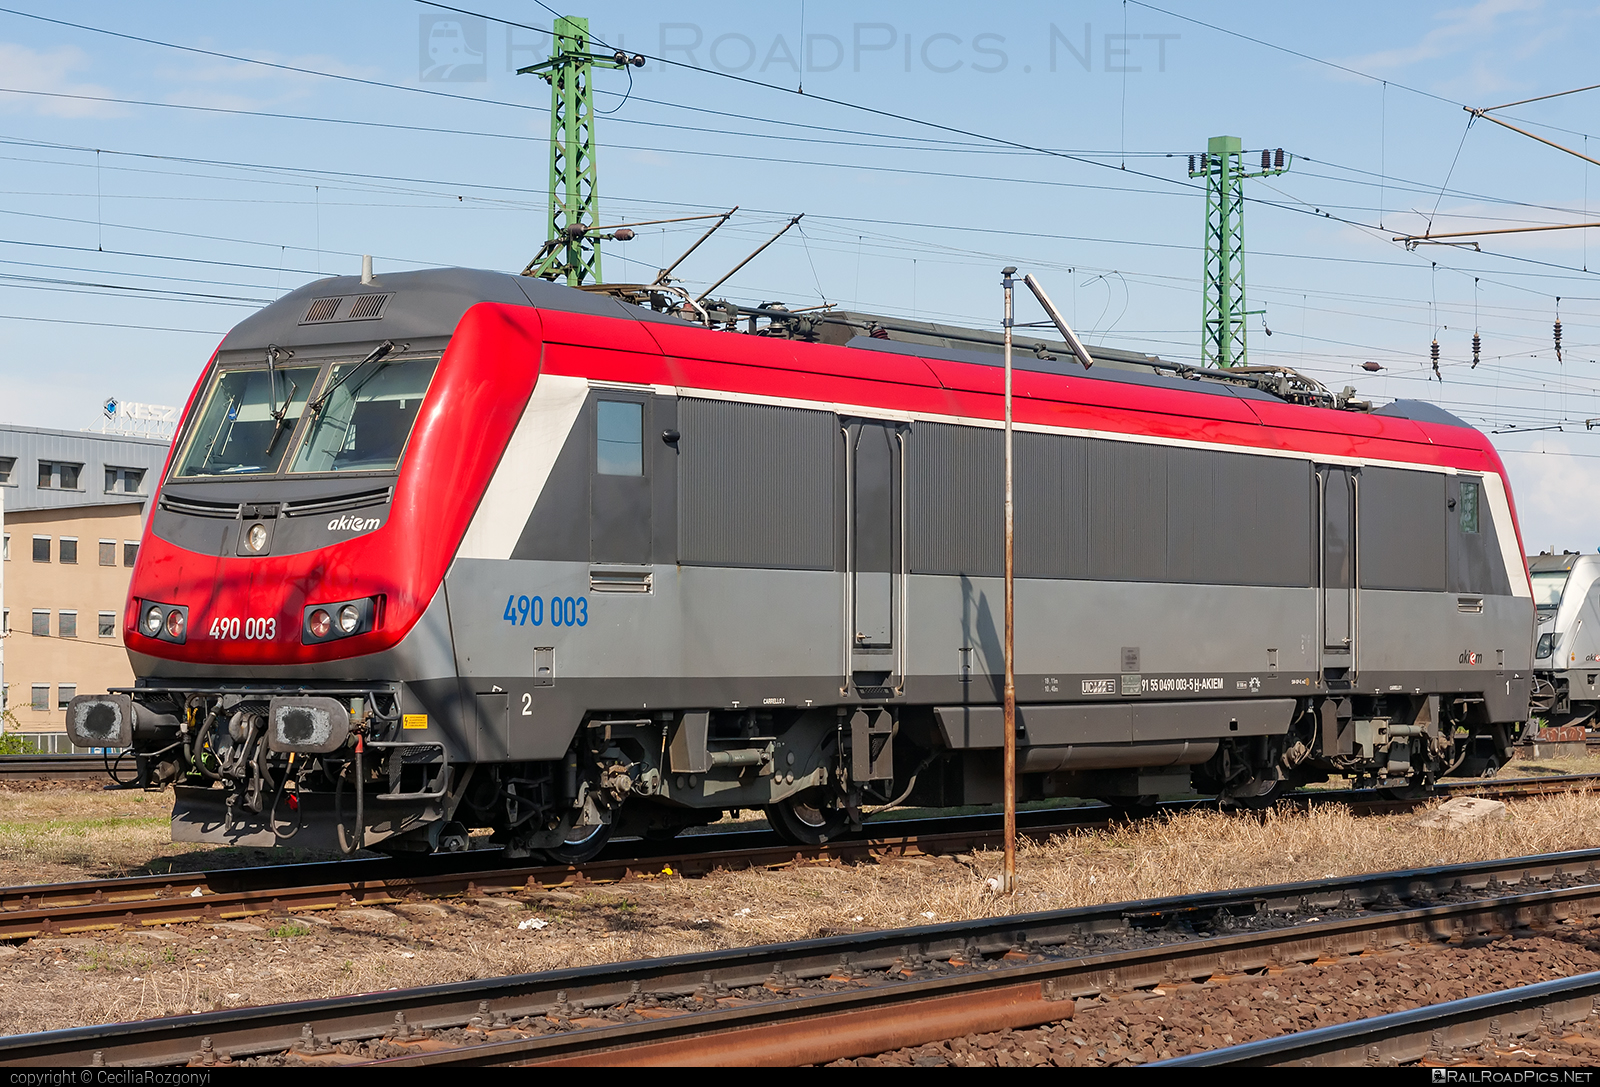 GEC Alsthom SNCF Class BB 36000 `Astride` - 490 003 operated by Akiem SAS #akiem #akiemsas #alstom #alstomAstride #alstomBB36000 #bb36000 #bb36000astride #gecAlsthomAstride #gecAlsthomBB36000 #gecalsthom